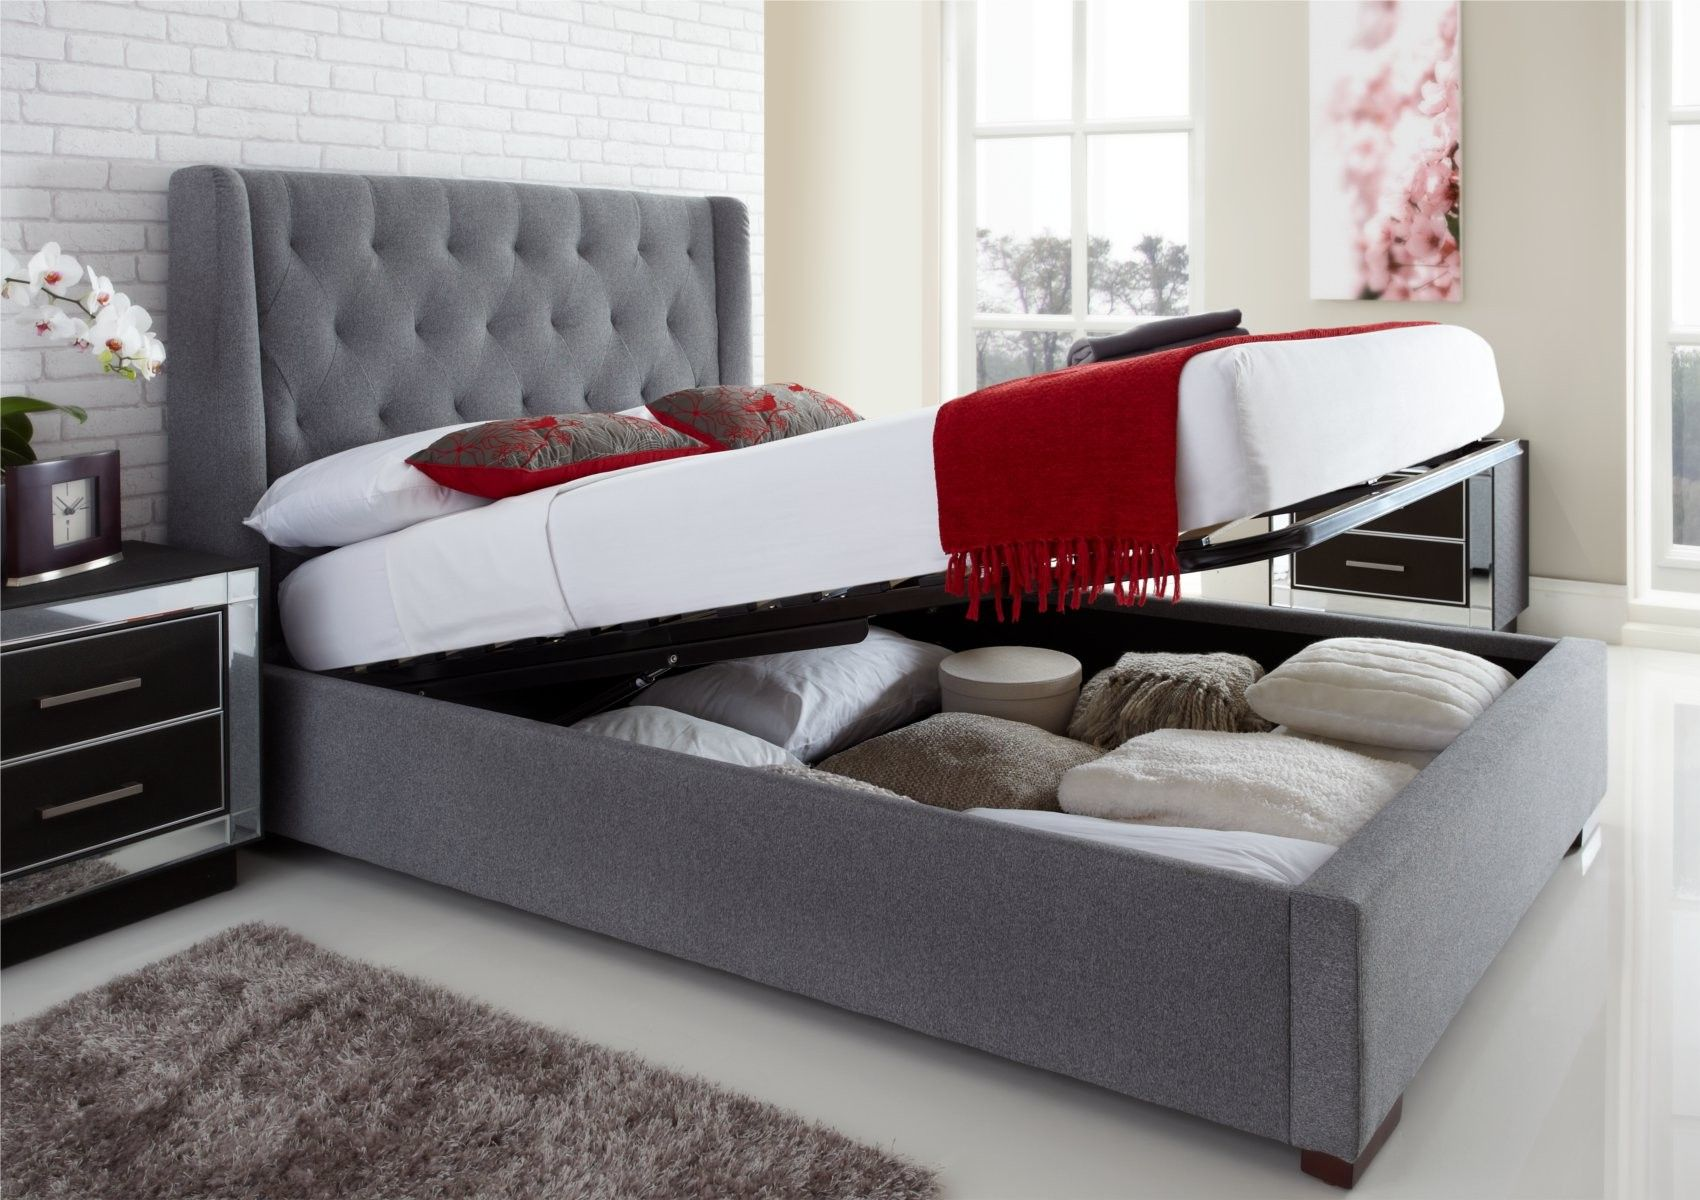 Google Images Of Upholstered King Size Headboards With